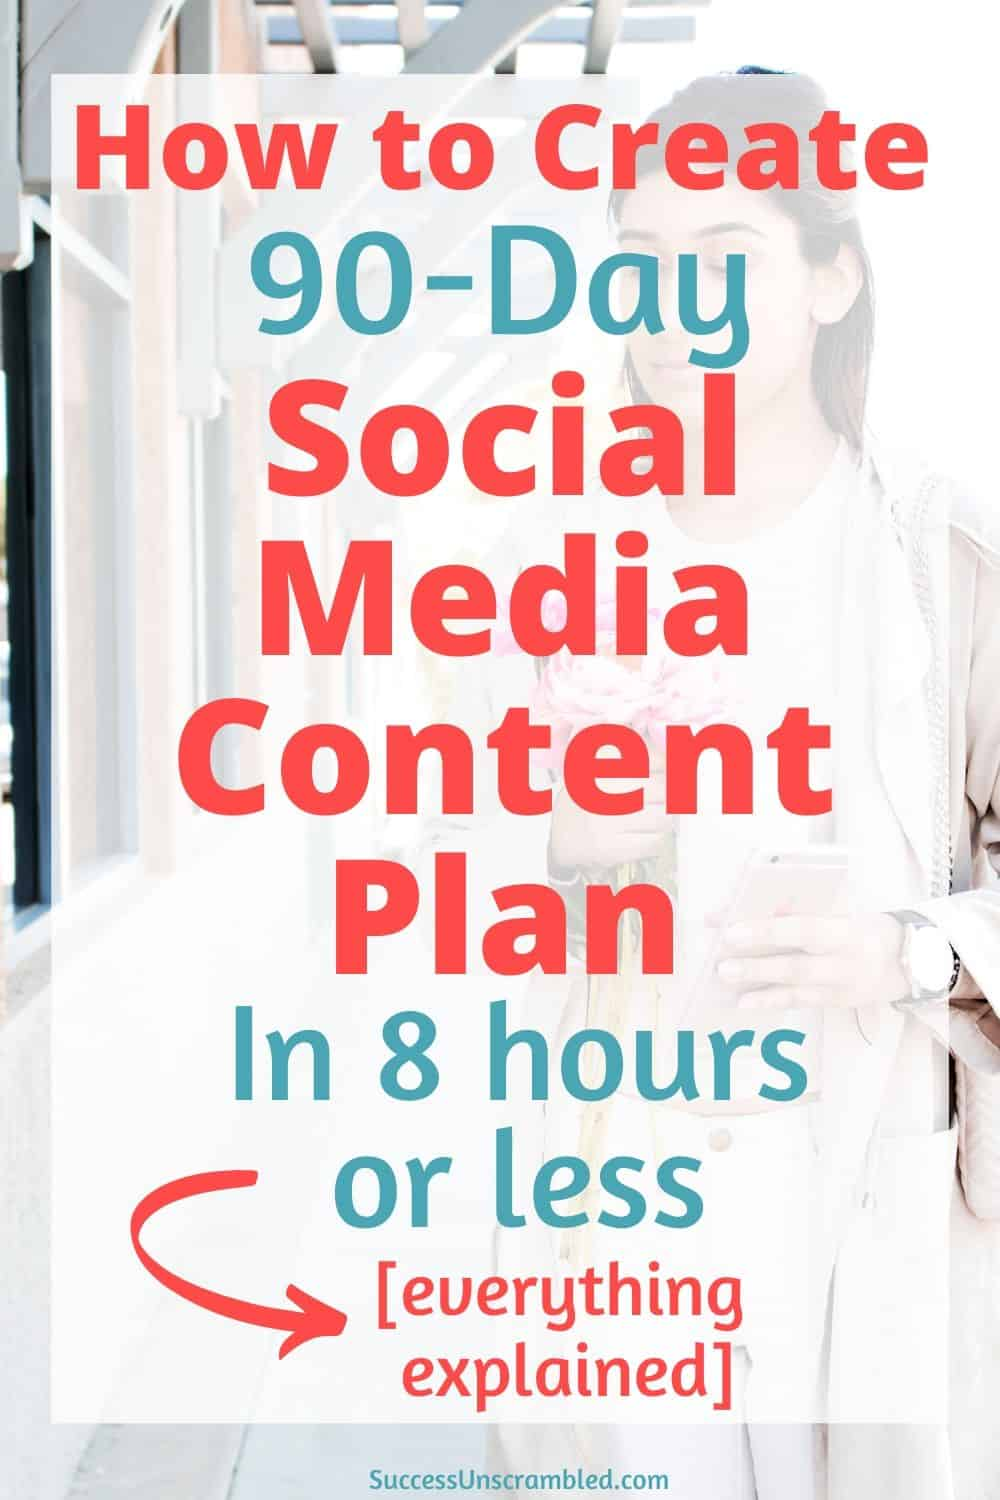 90-Day social media content plan, social media plan example, social media calendar ideas - pin 2